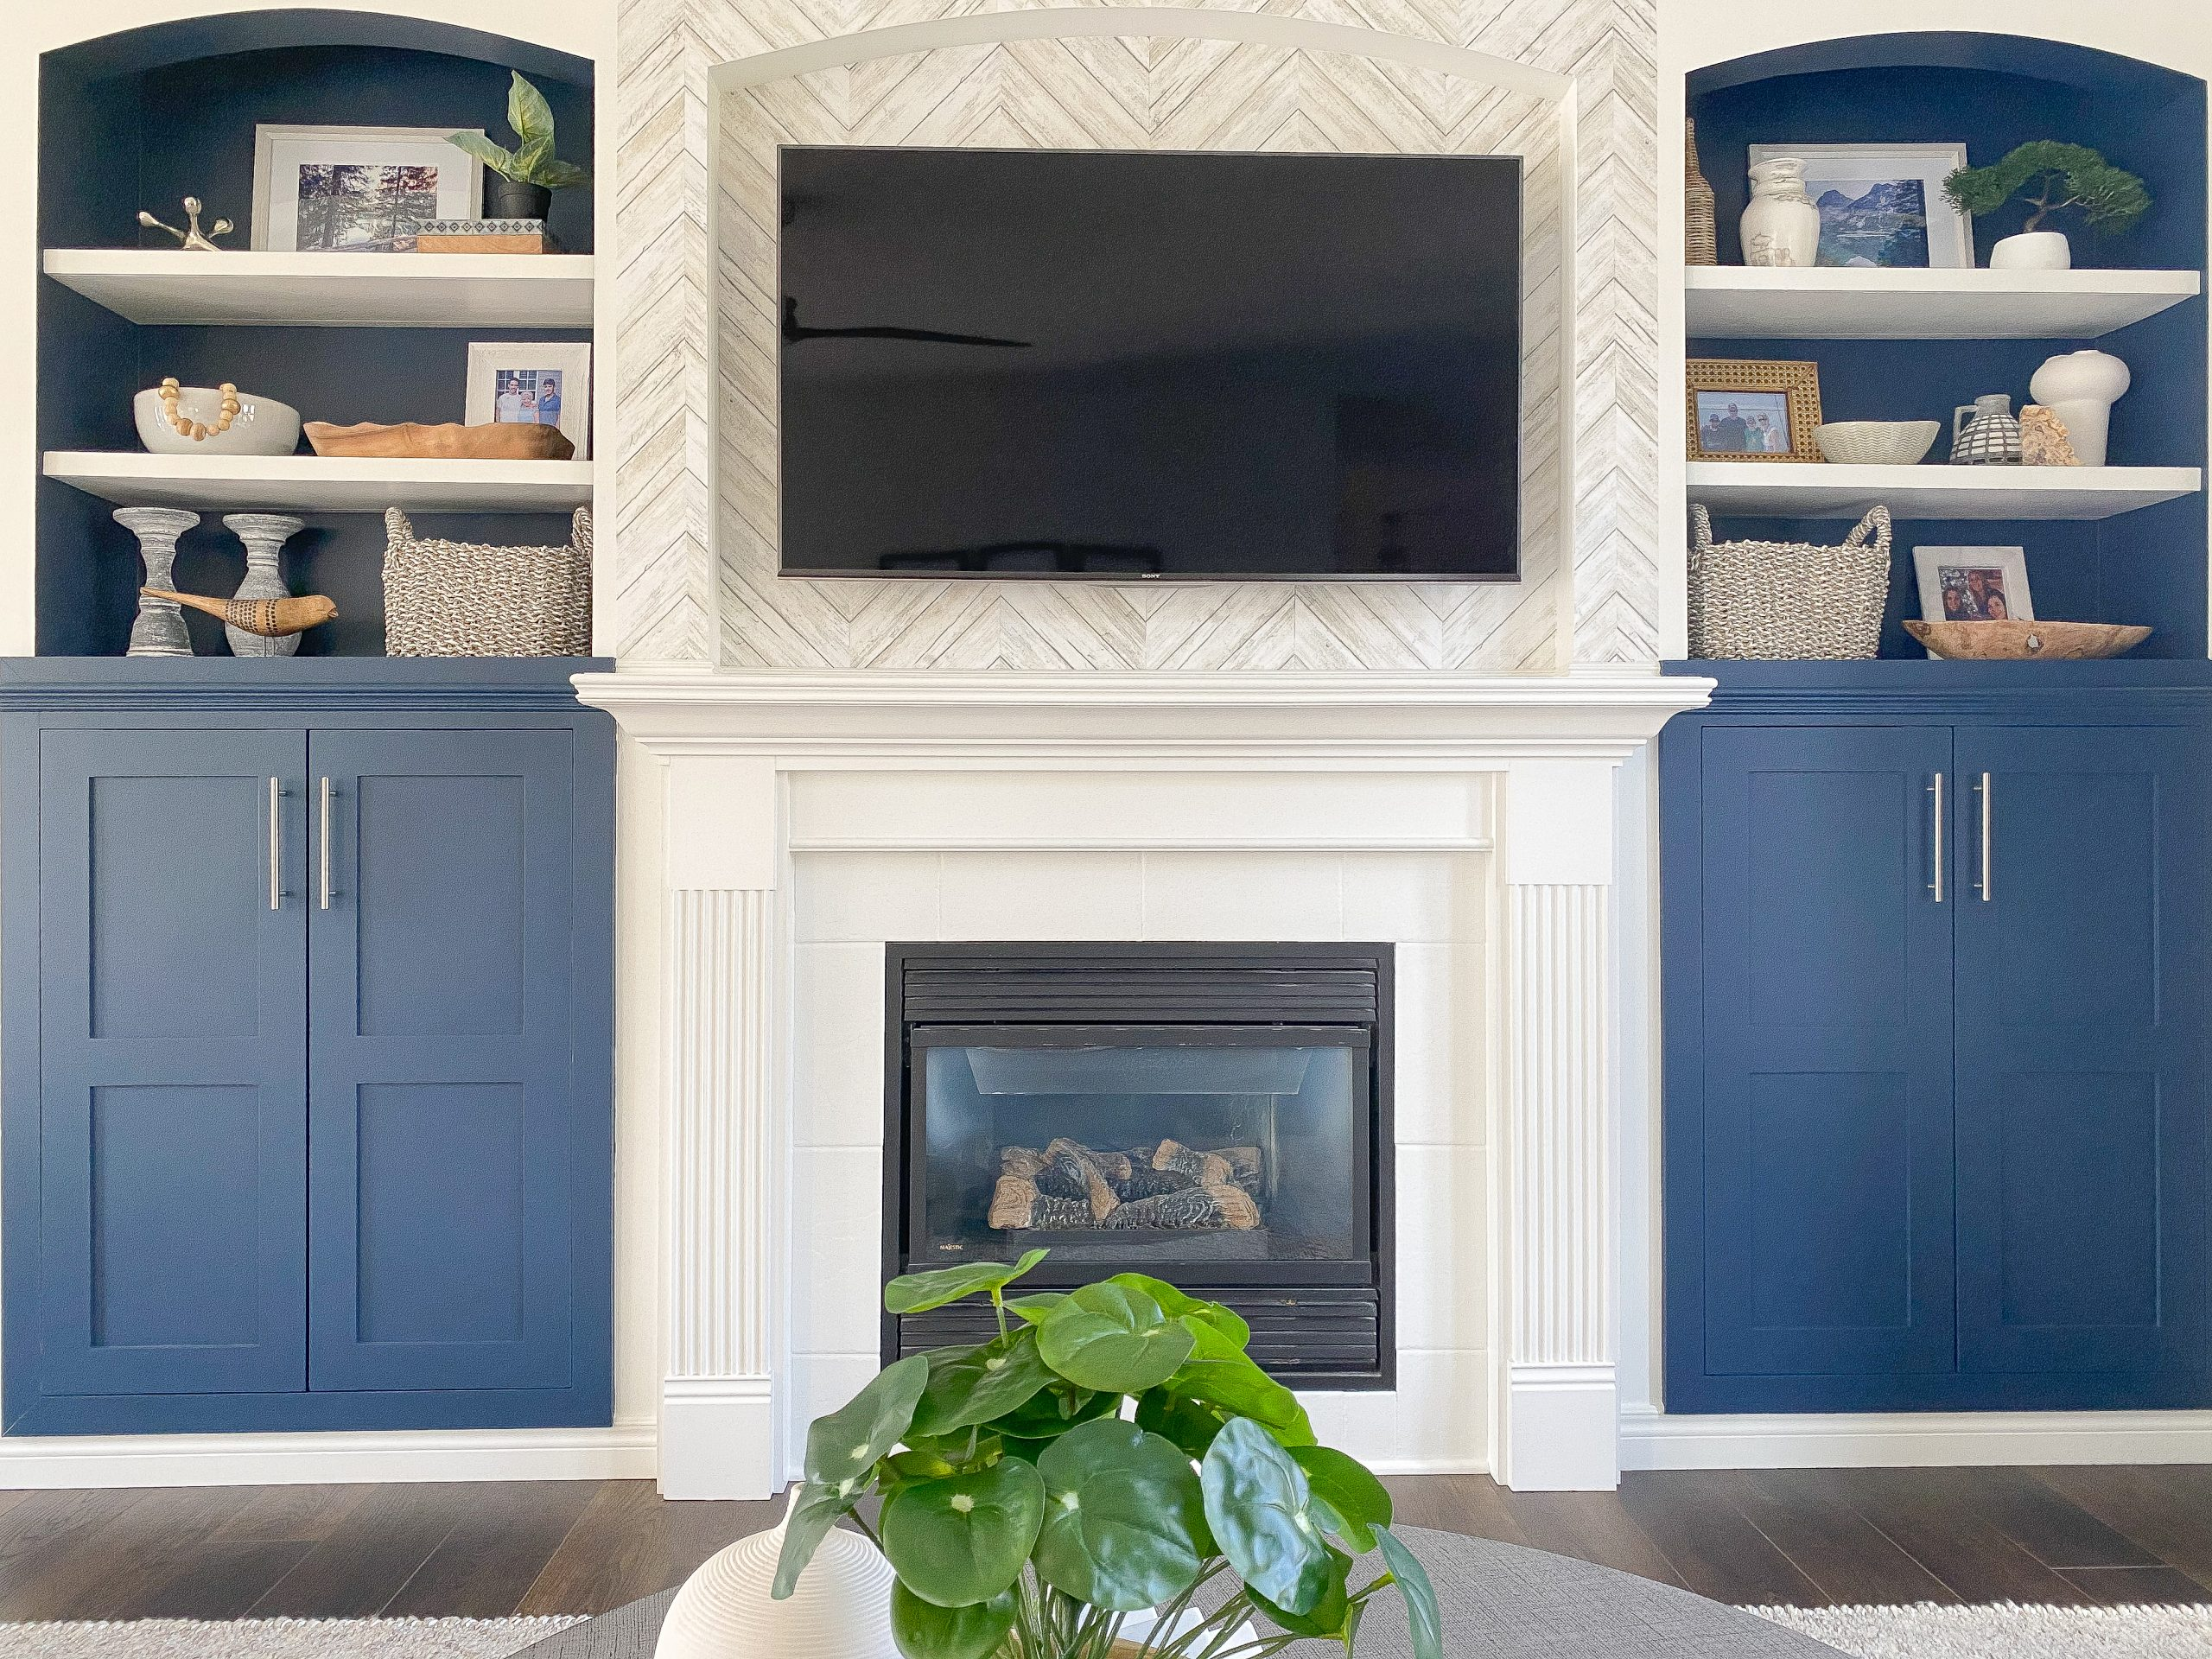 Interior designer in Chatham Ontario transforms a fireplace and mantle with colour, wallpaper, and styled shelves.